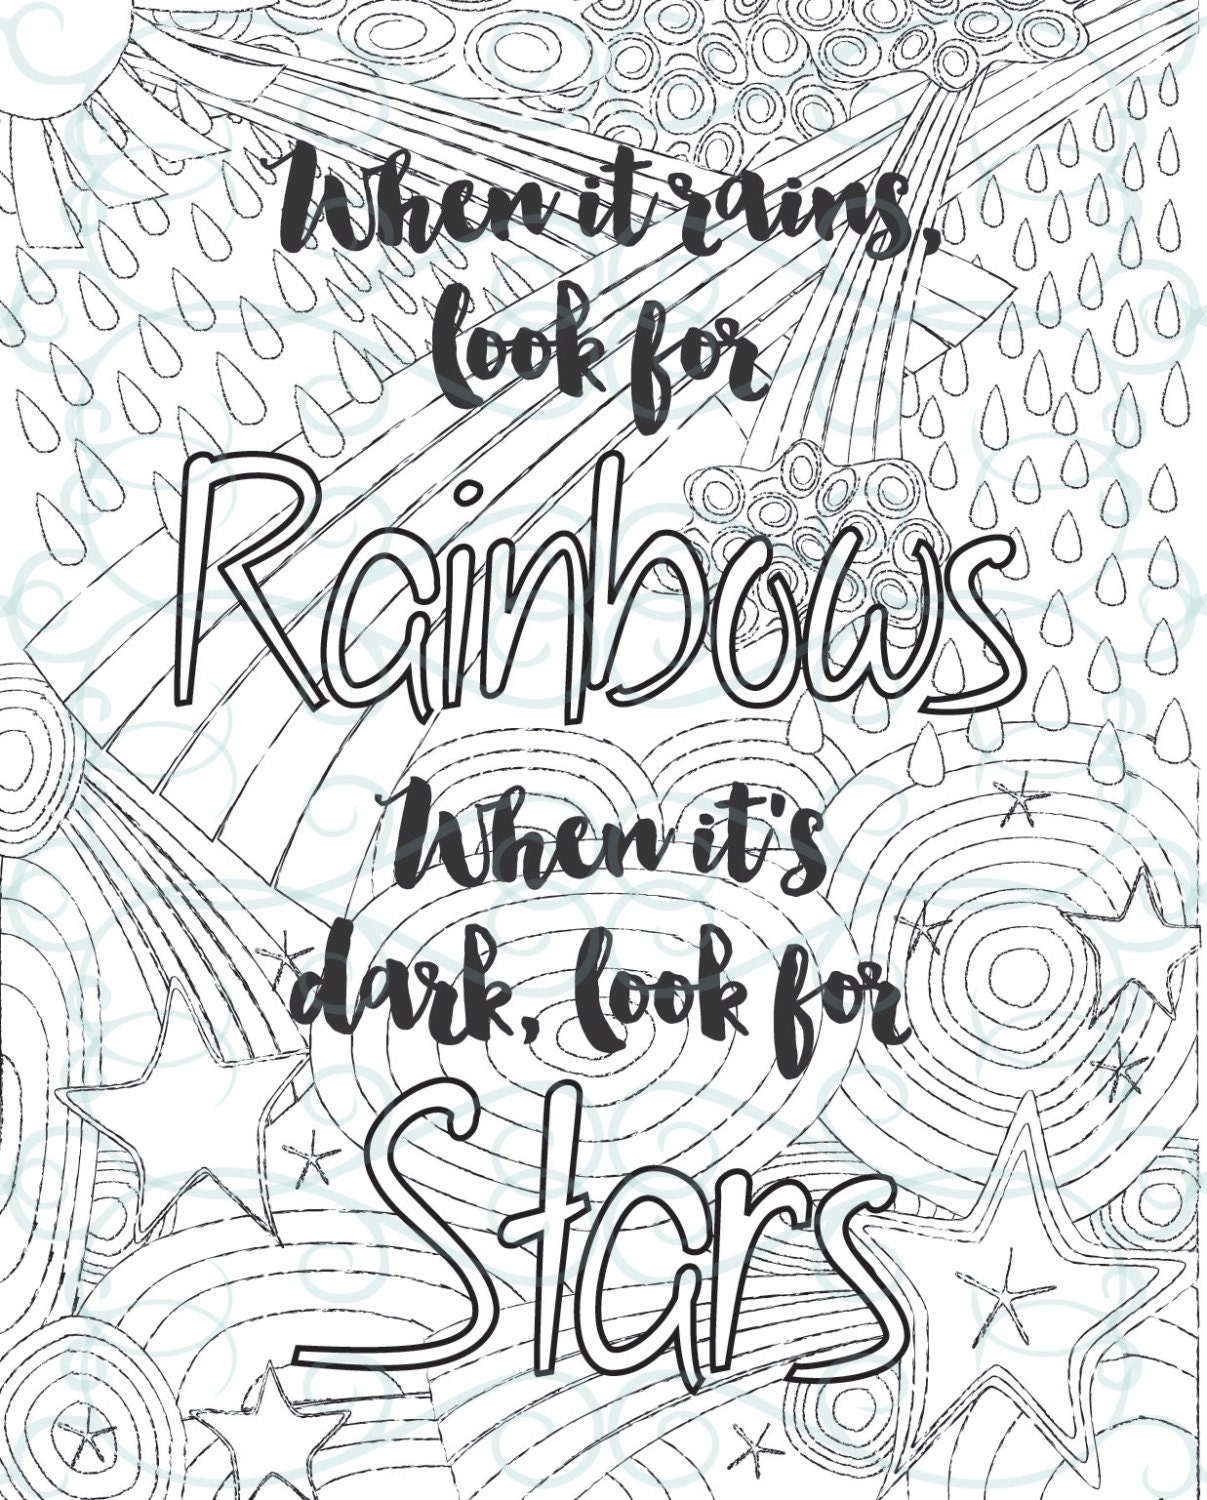 Inspirational Quotes Coloring Pages For Adults : Free coloring pages inspirational adult